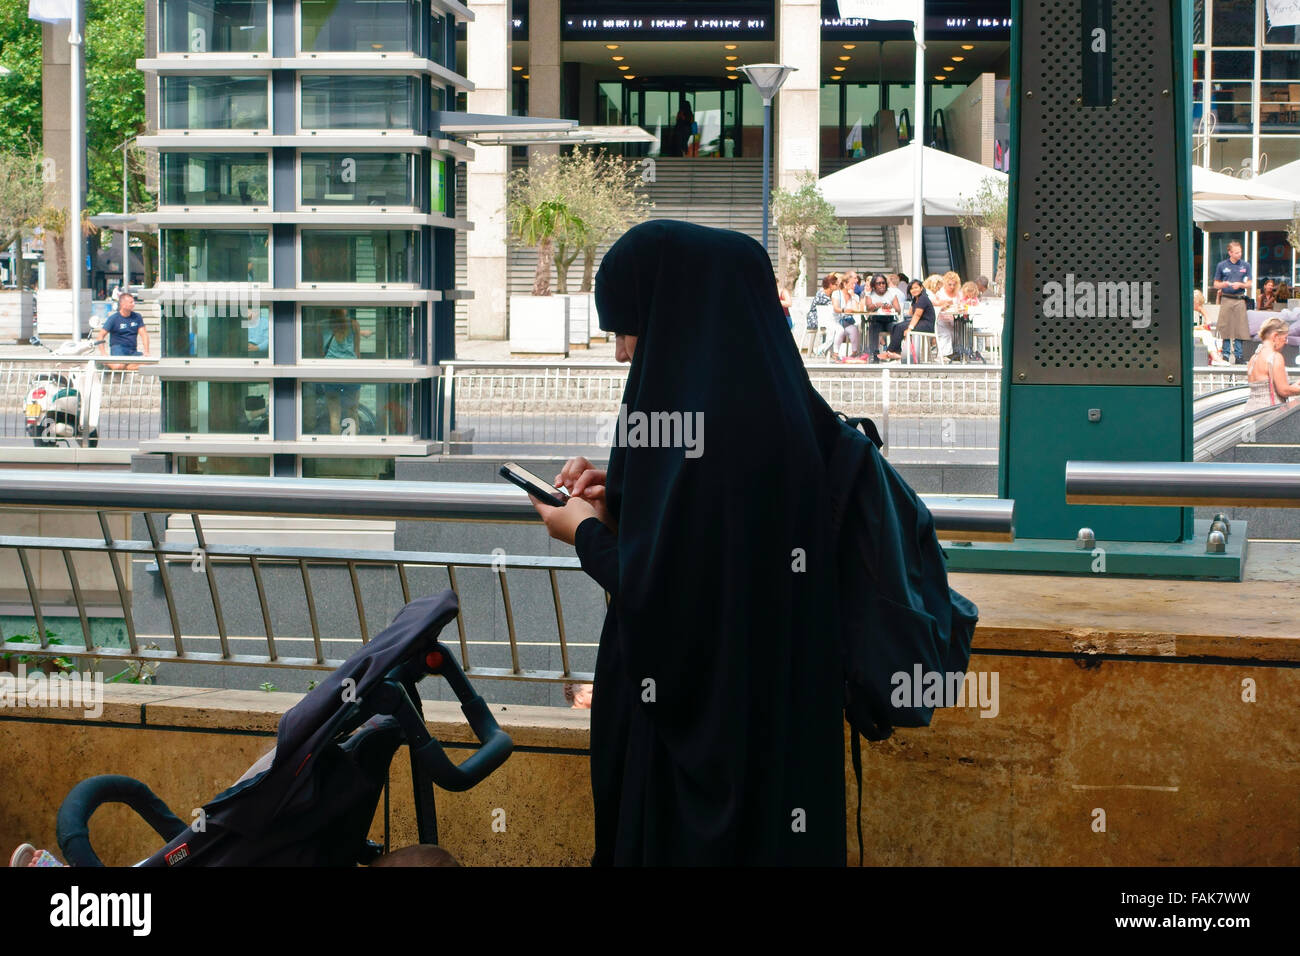 muslim woman wearing burka traditional clothing, using a mobile phone. Shopping mall. - Stock Image